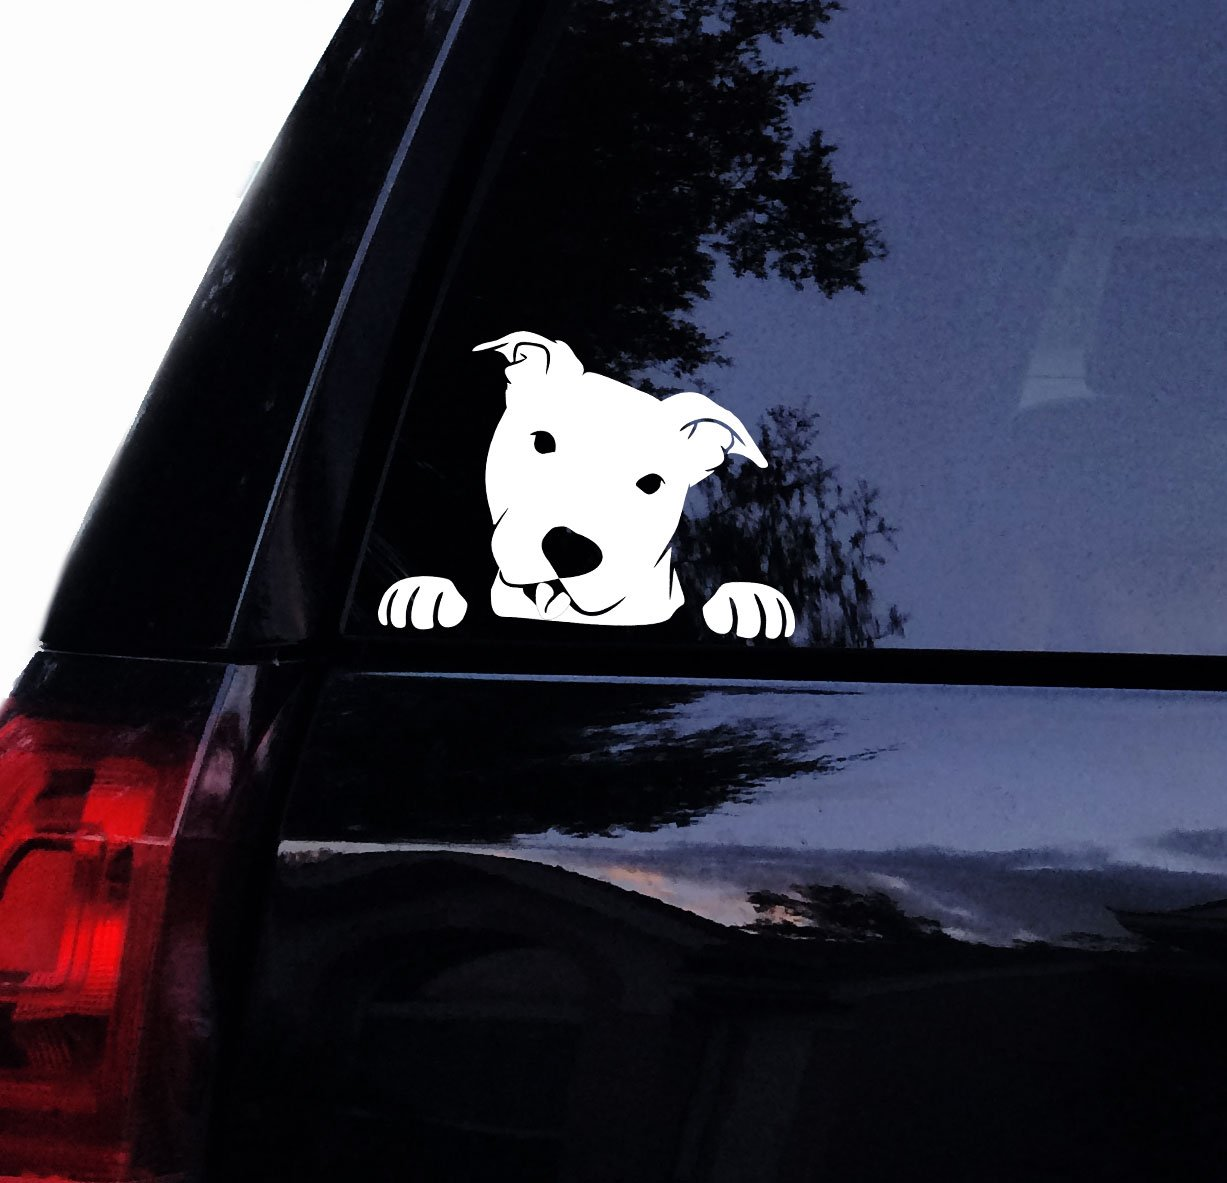 Tshirt Rocket Pitbull Decal Peeking Peek A Boo Pit Face Pit Bull Dog Car Decal Laptop Decal Car Window Sticker 7 quot White in Car Stickers from Automobiles amp Motorcycles